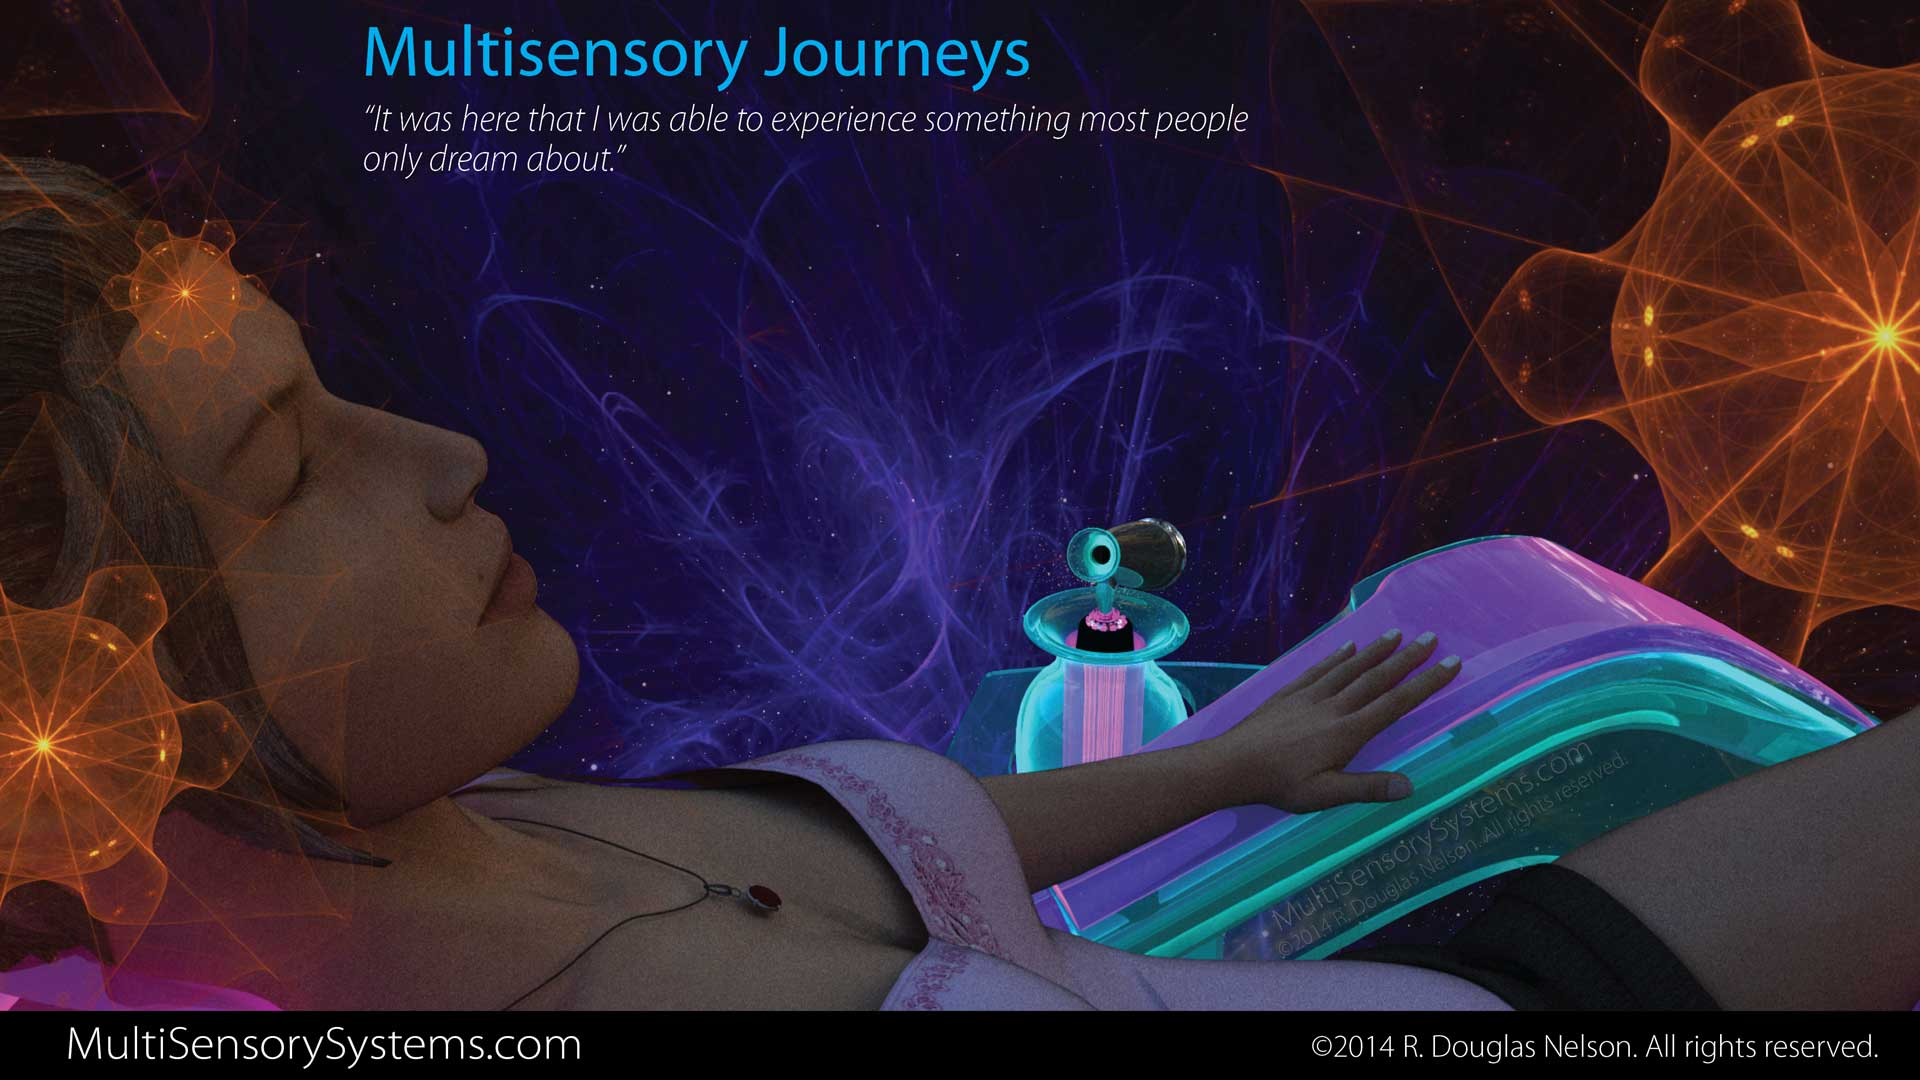 Multisensory Journeys